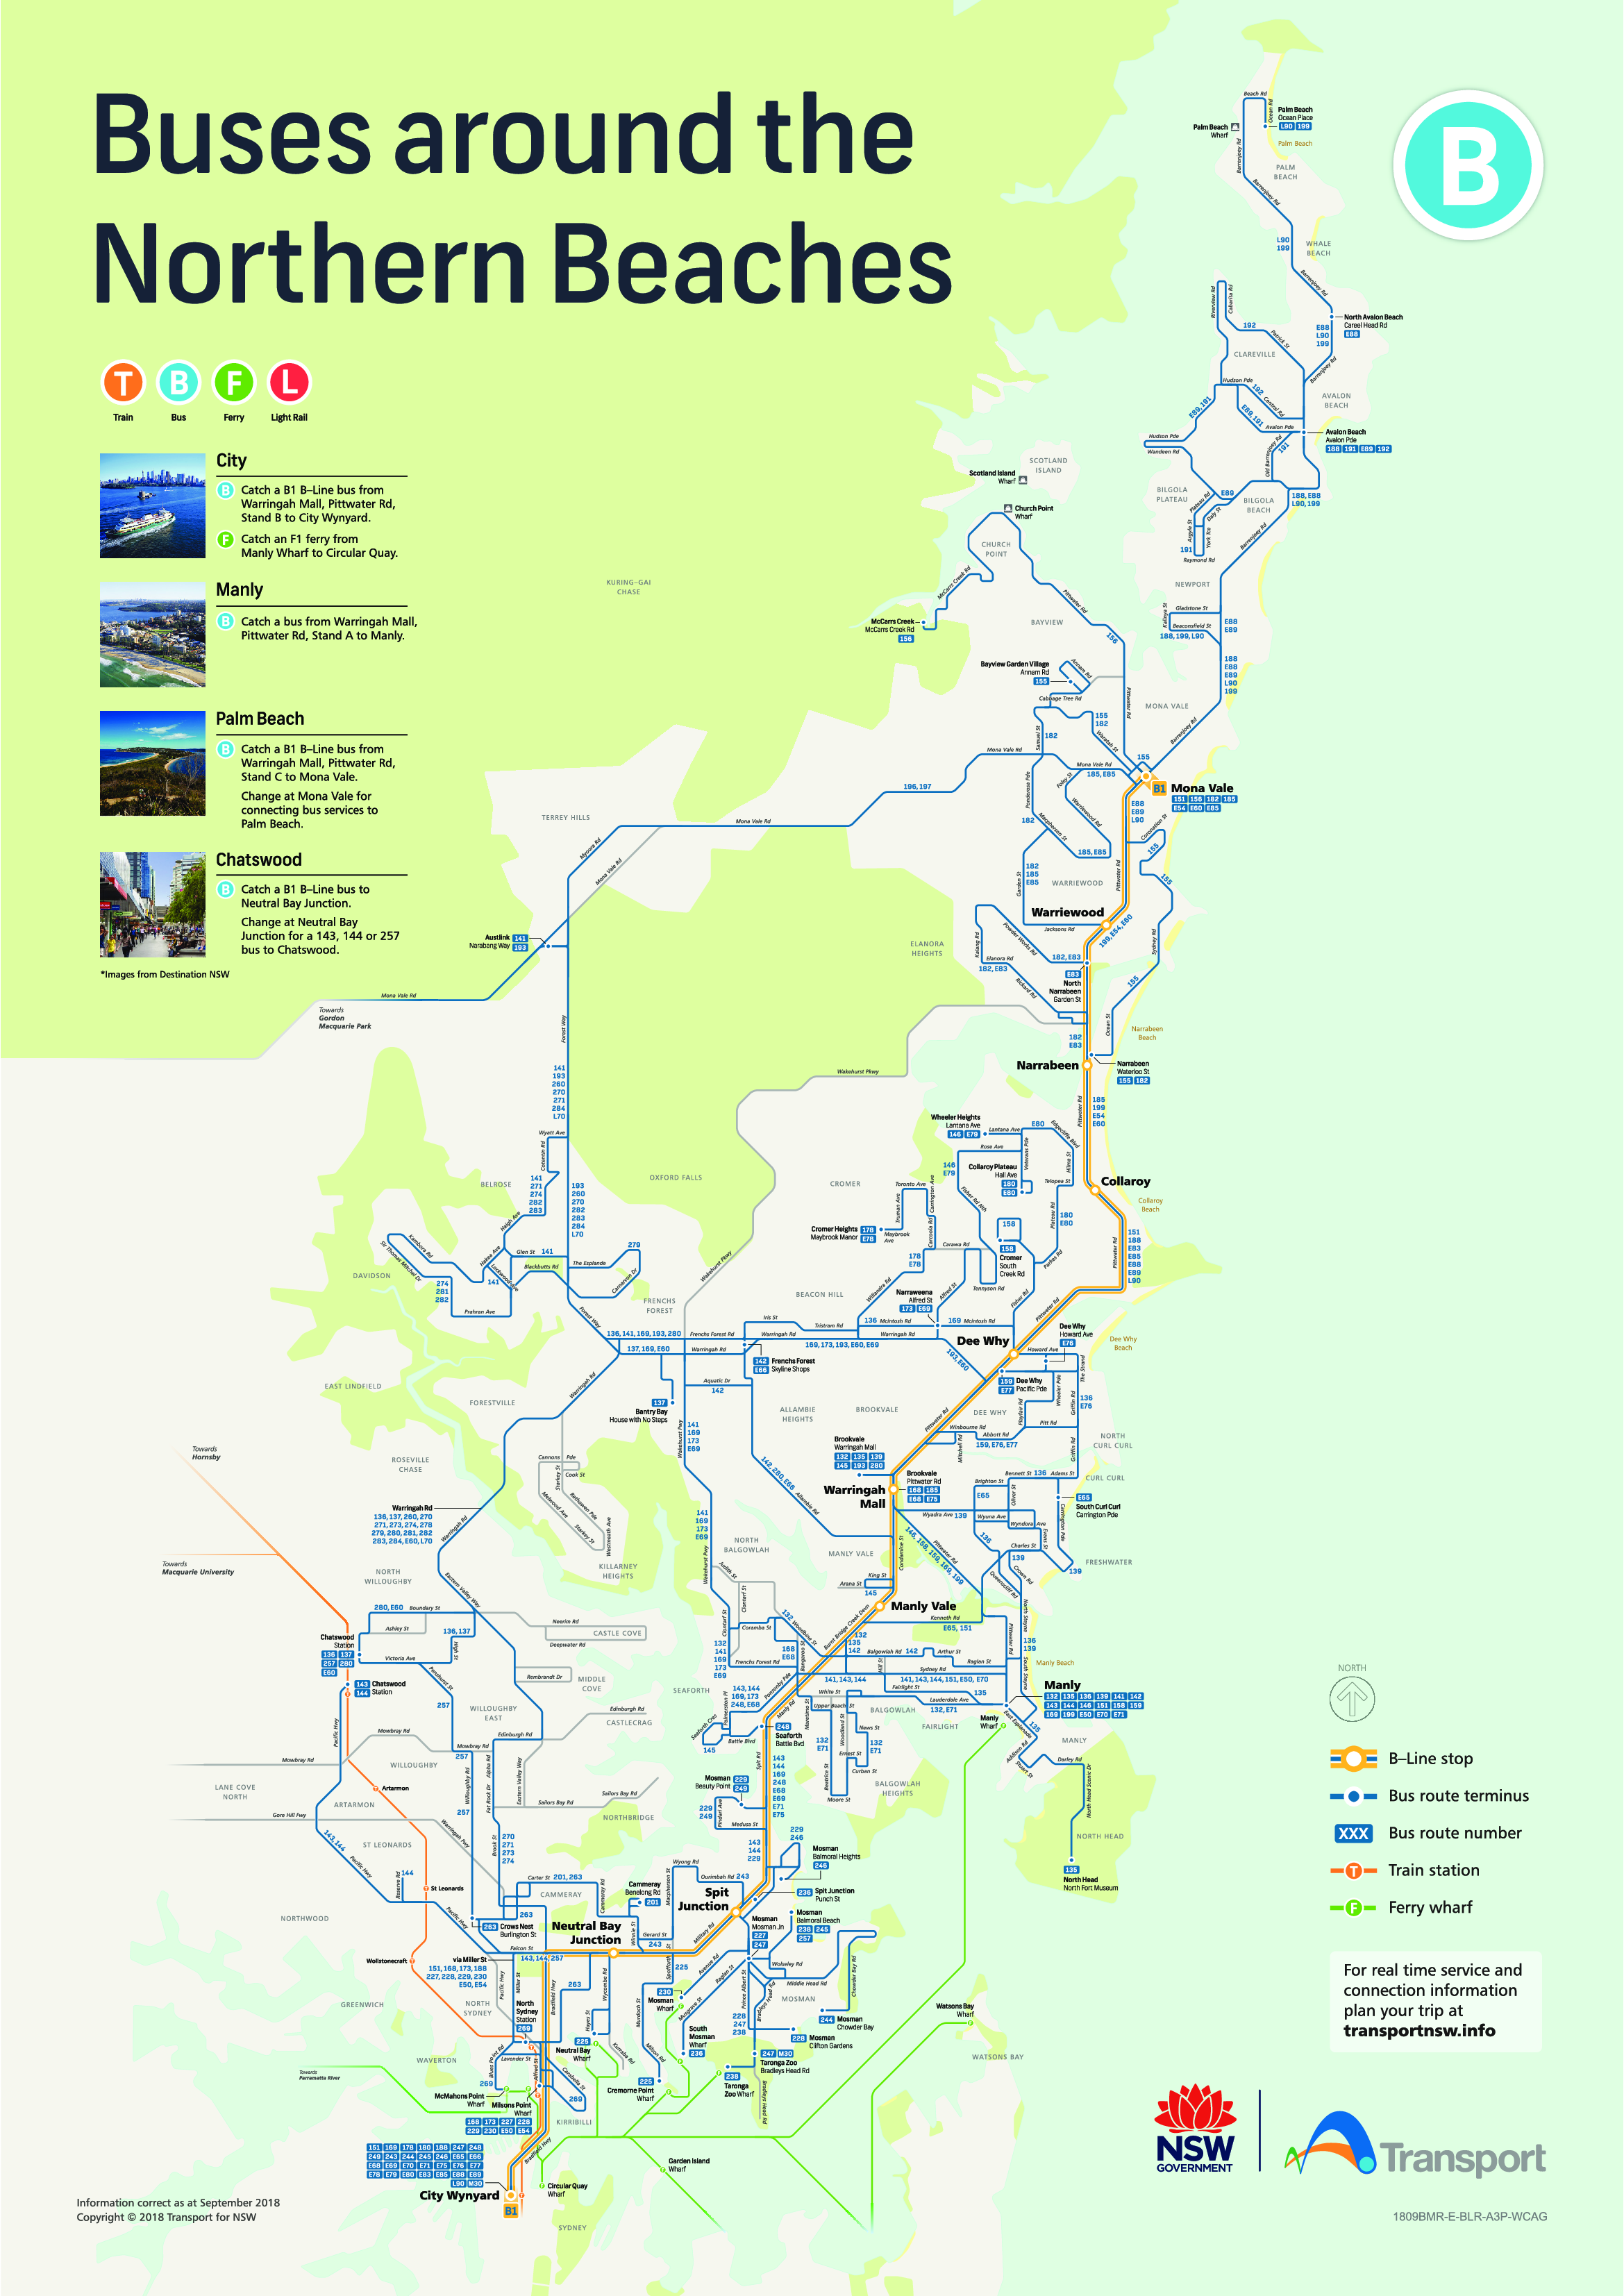 Map of Sydney Buses around the Northern Beaches